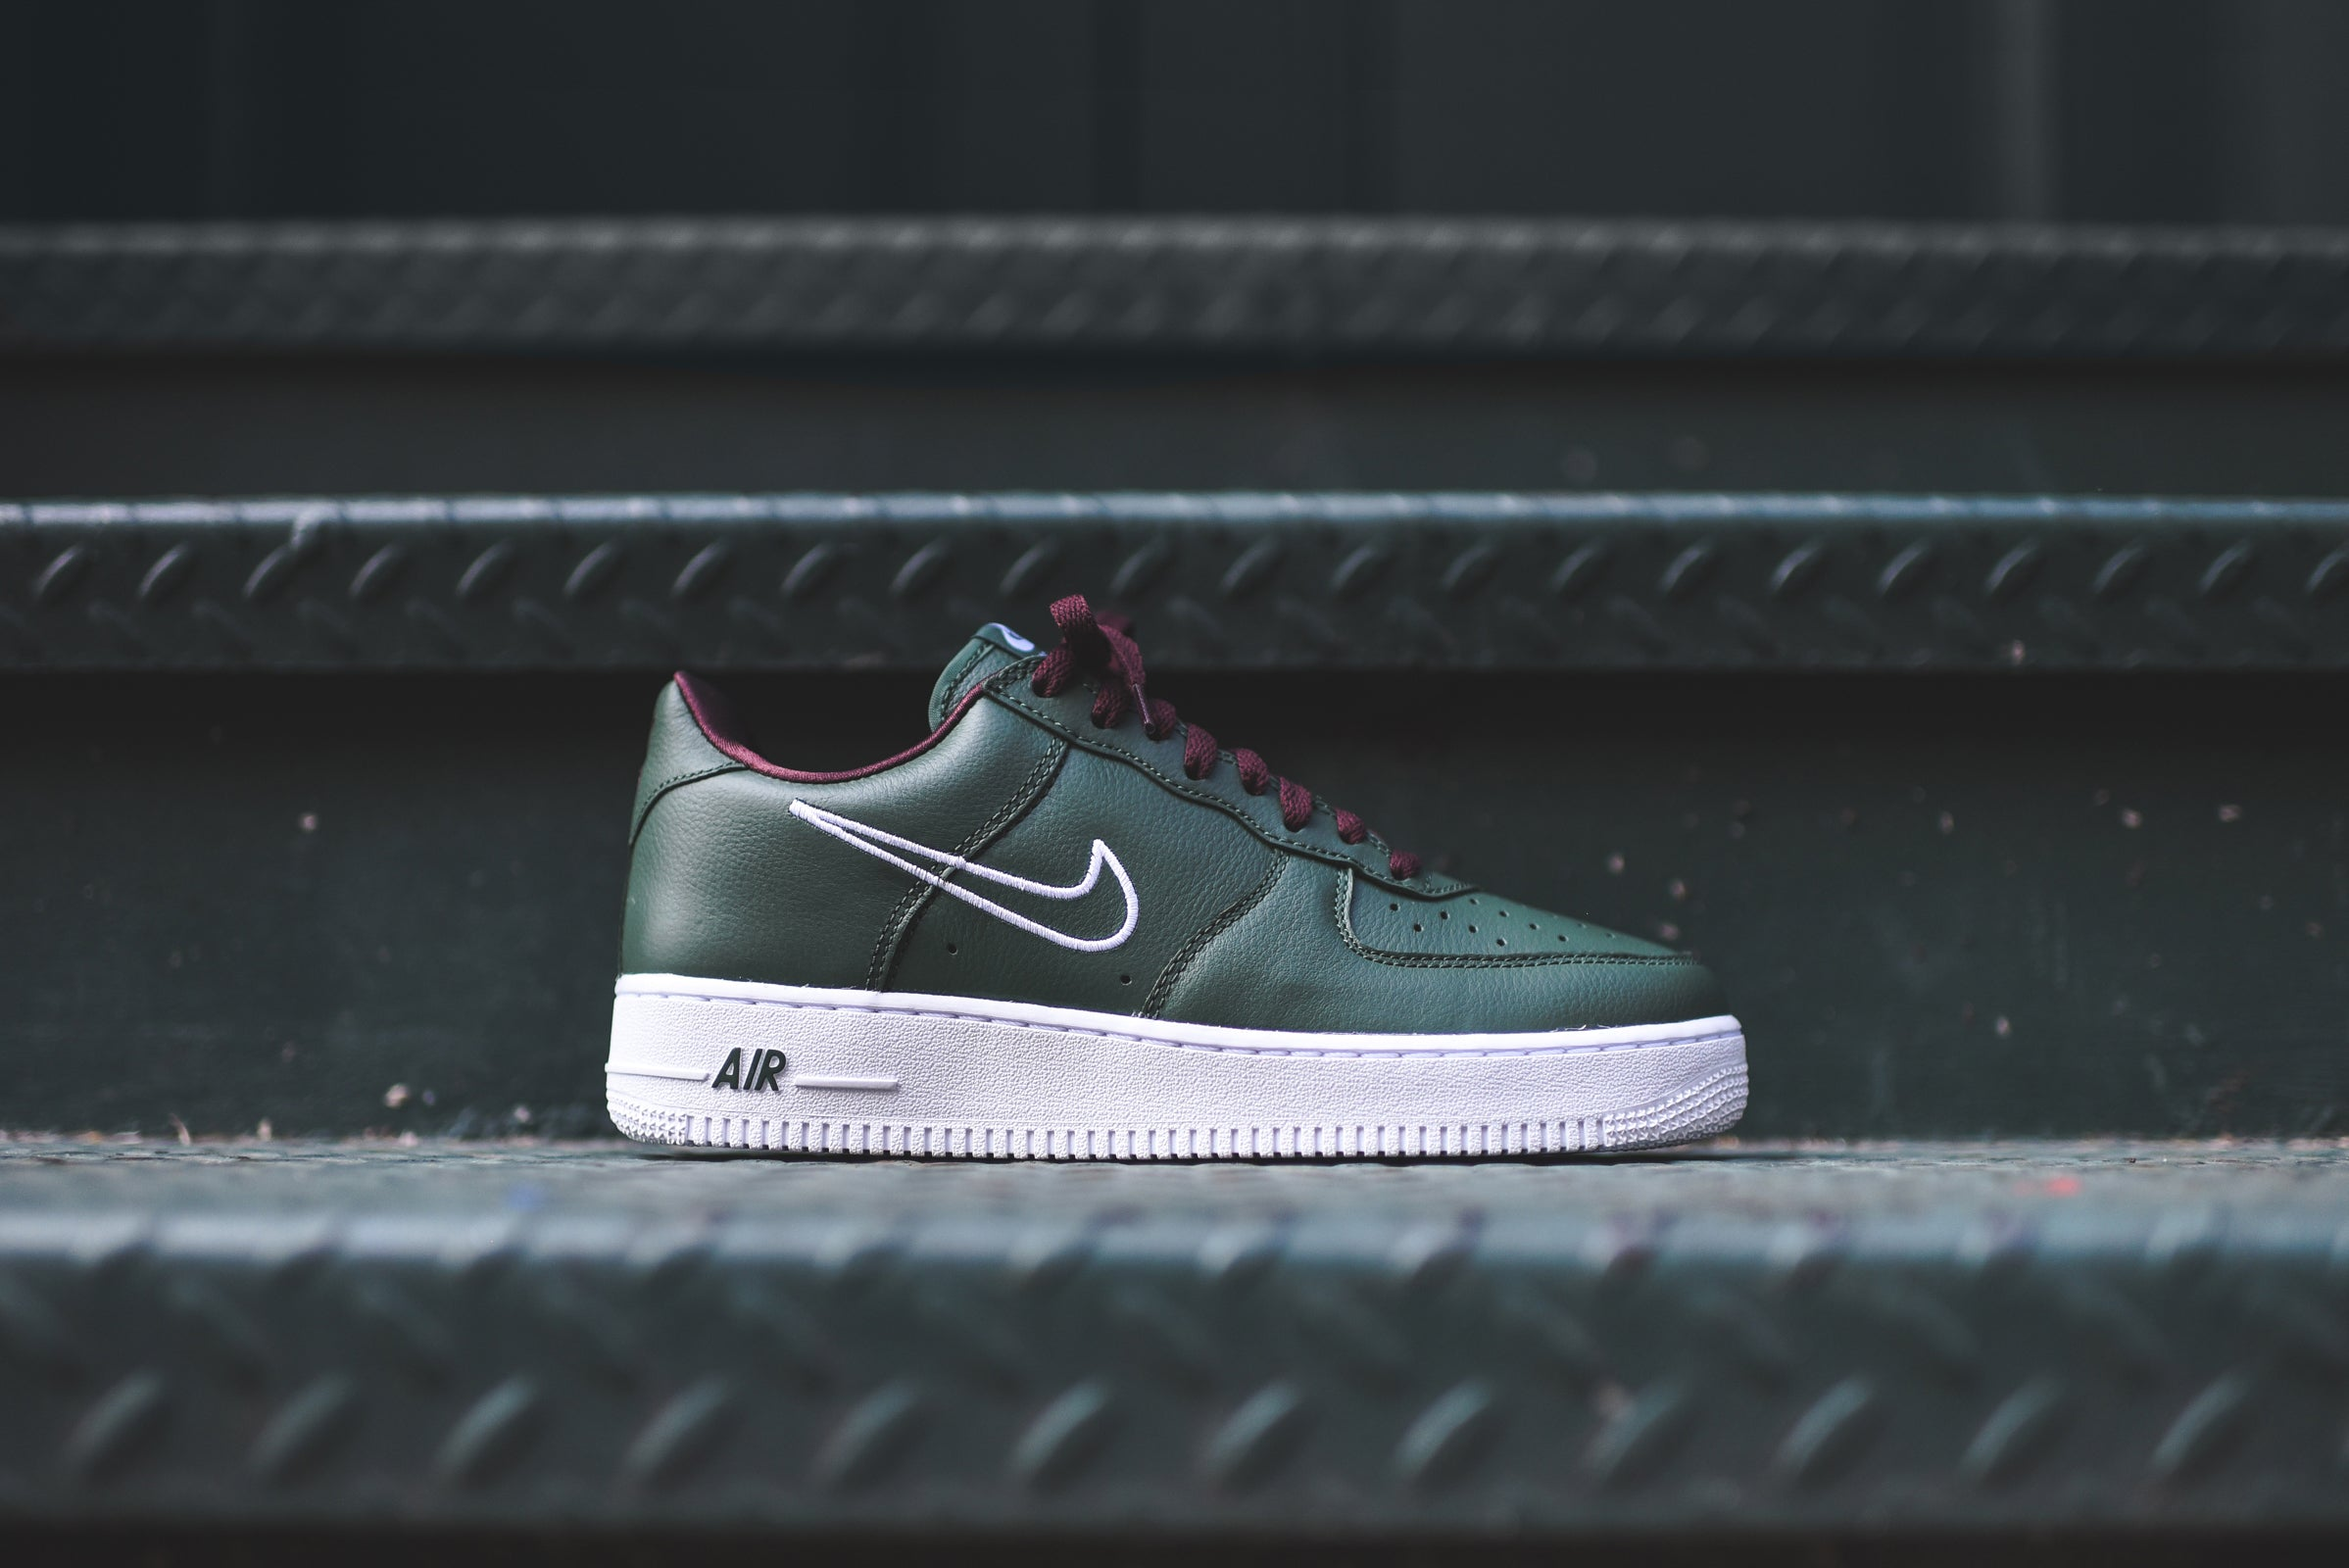 Nike Air Force 1 Low Retro Hong Kong  Brand New - size 9.5